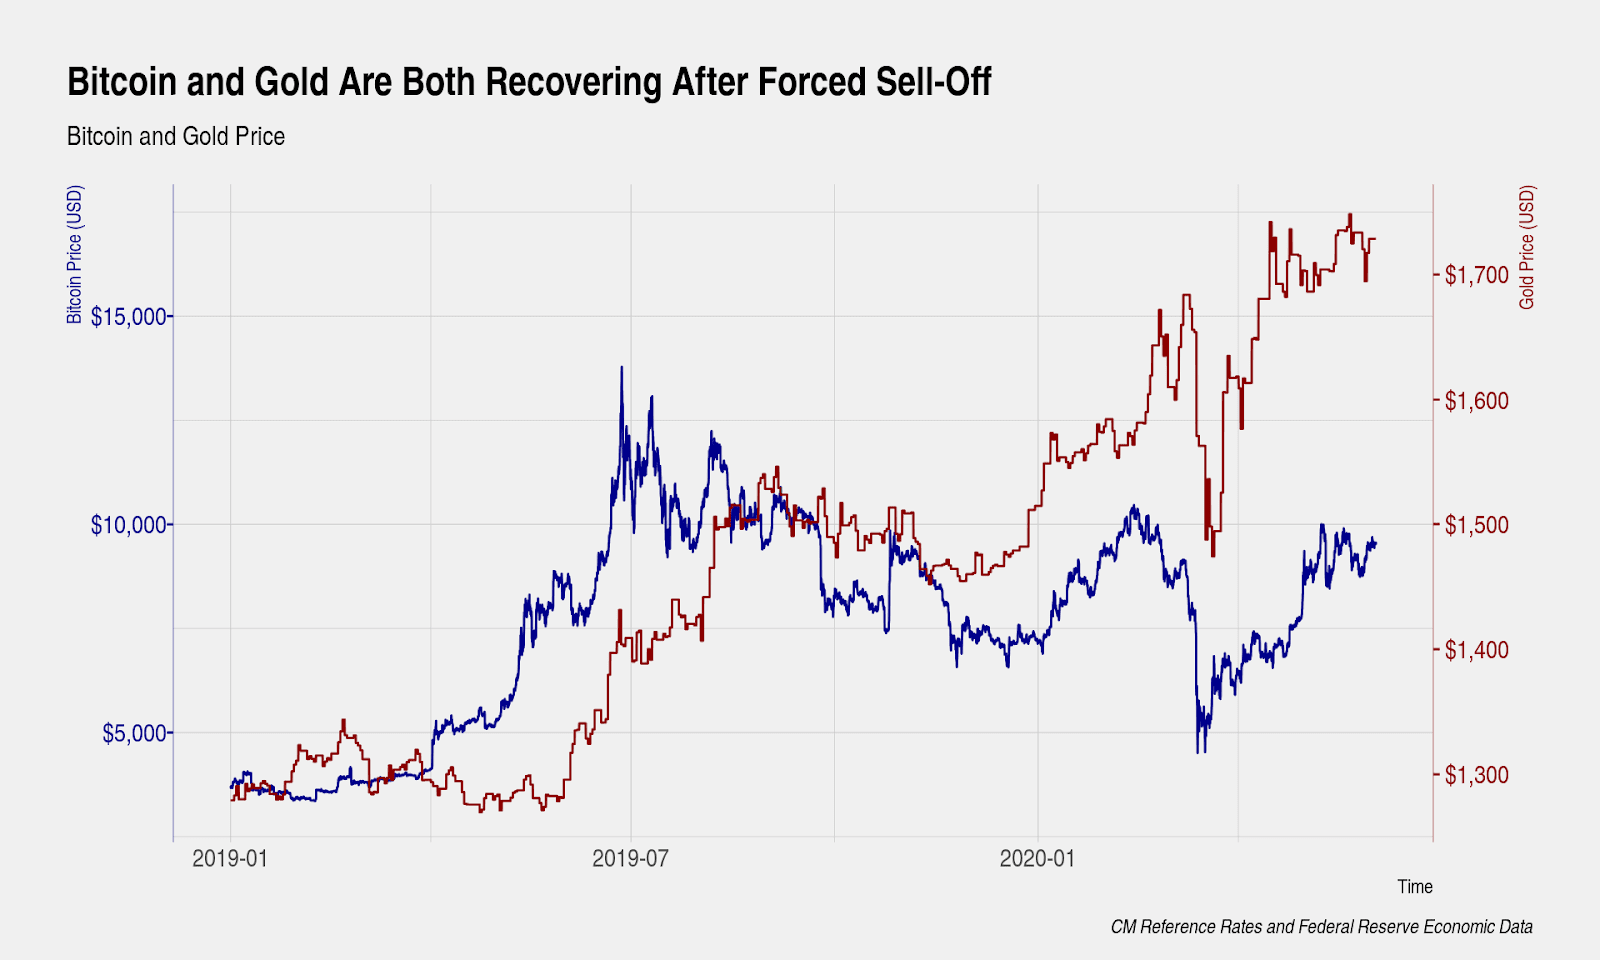 The price of Bitcoin and gold